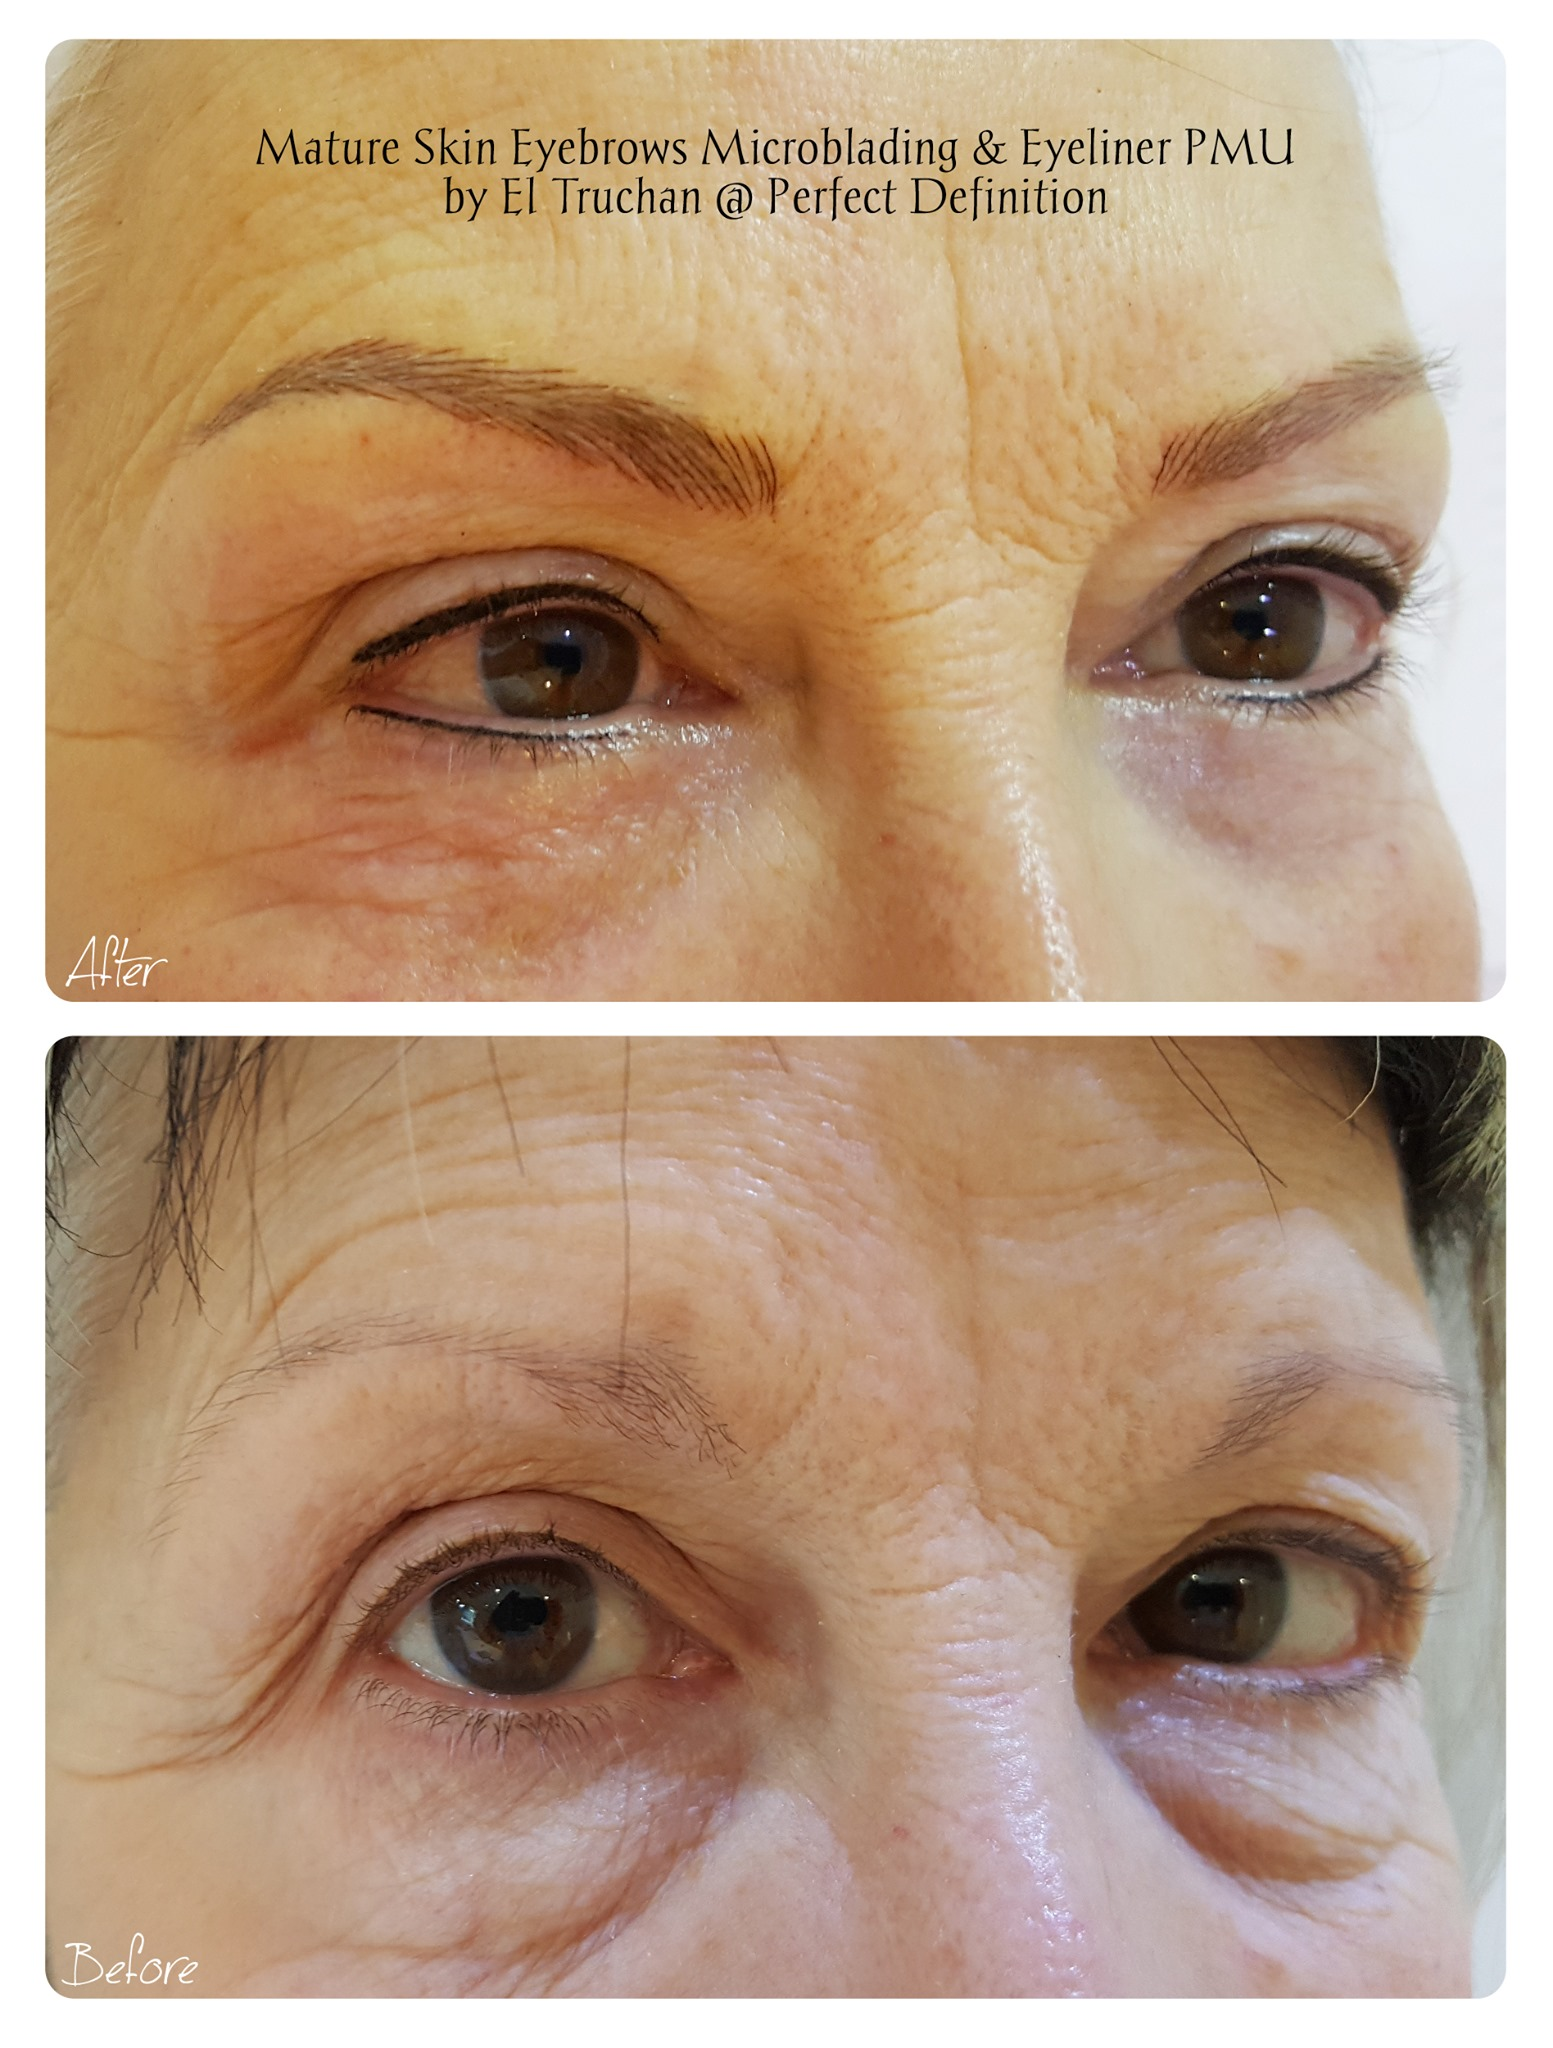 Mature Skin Eyebrows Microblading & Eyle